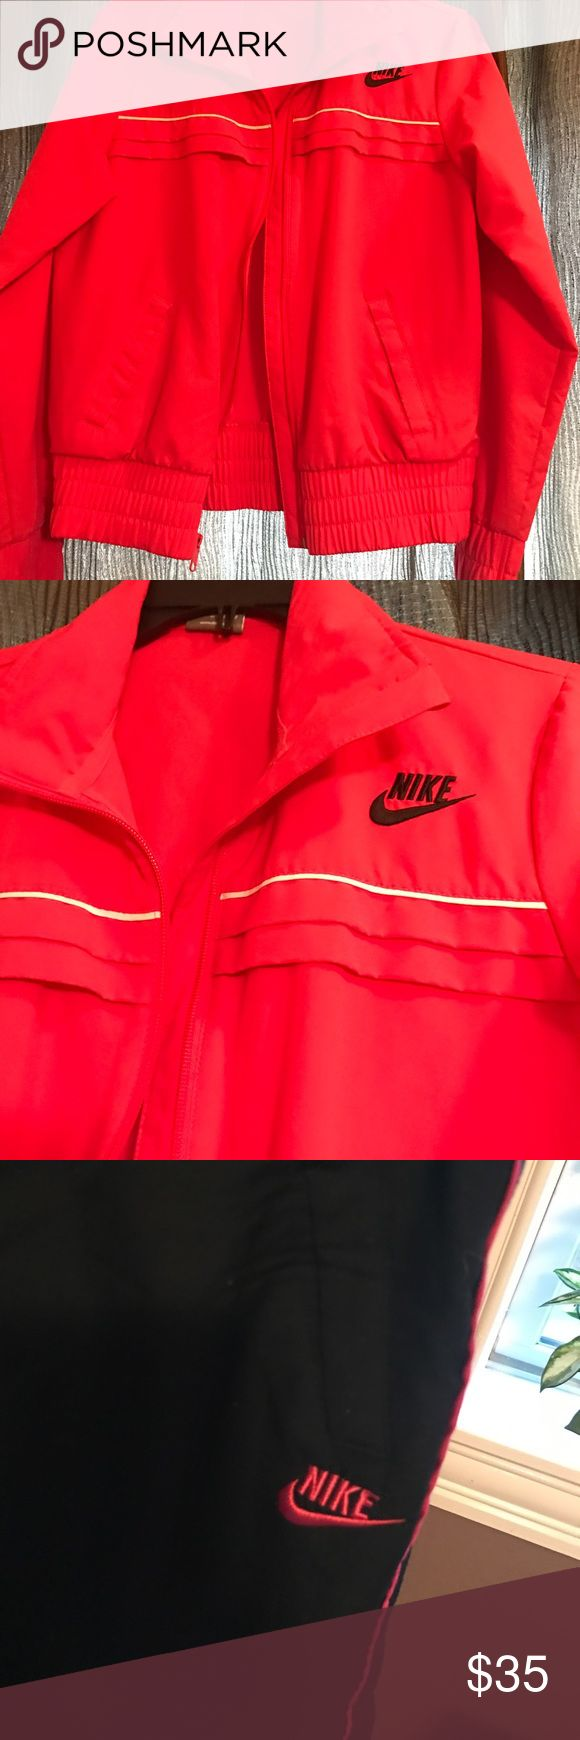 Nike jogging pants and jacket Nike jacket and Nike jogging pants has been worn a few times like new Nike Other